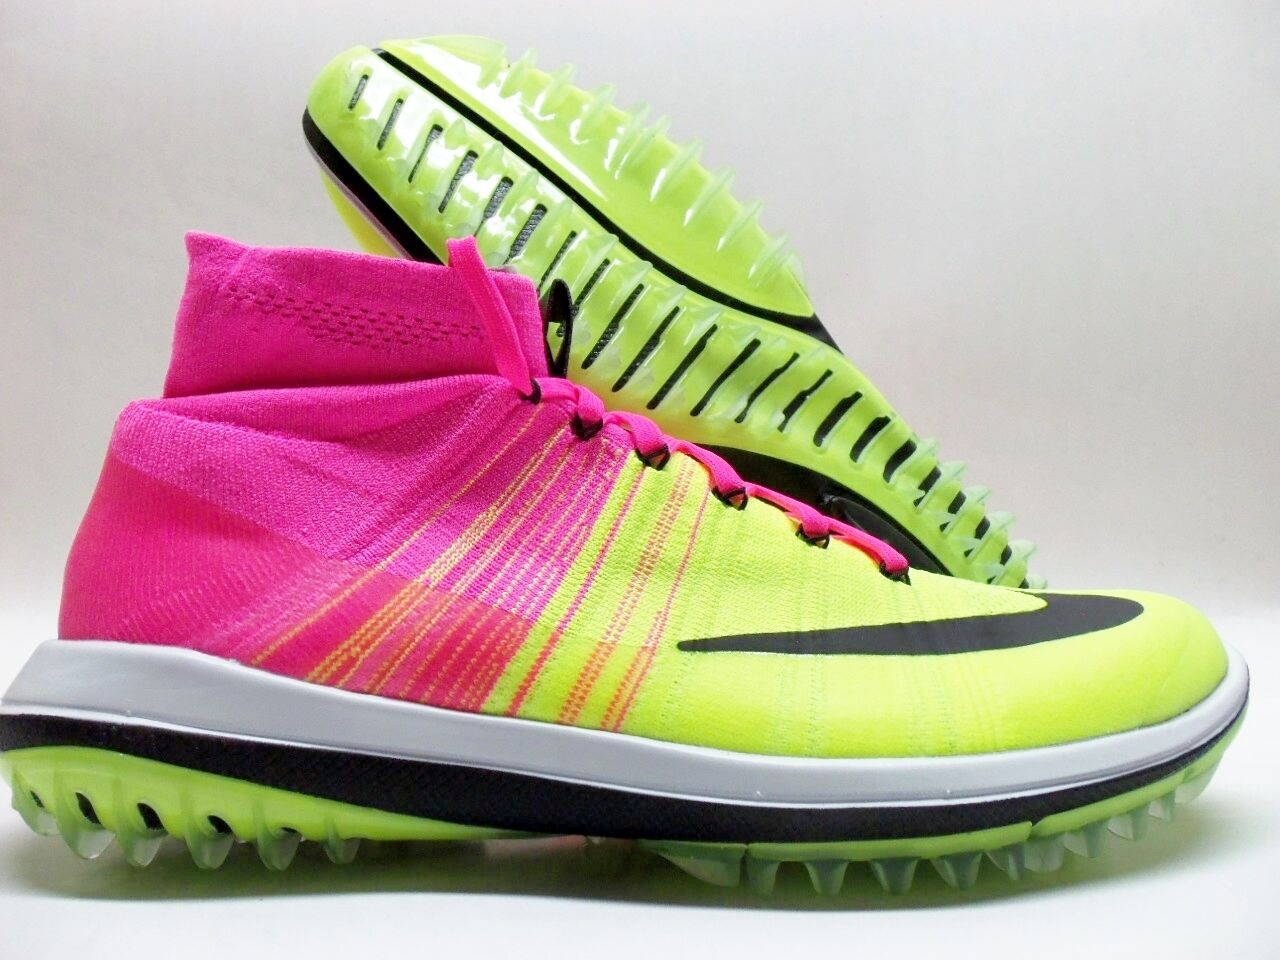 NIKE FLYKNIT ELITE GOLF SHOE PINK BLAST/BLACK-VOLT SIZE MEN'S 11 Price reduction The latest discount shoes for men and women